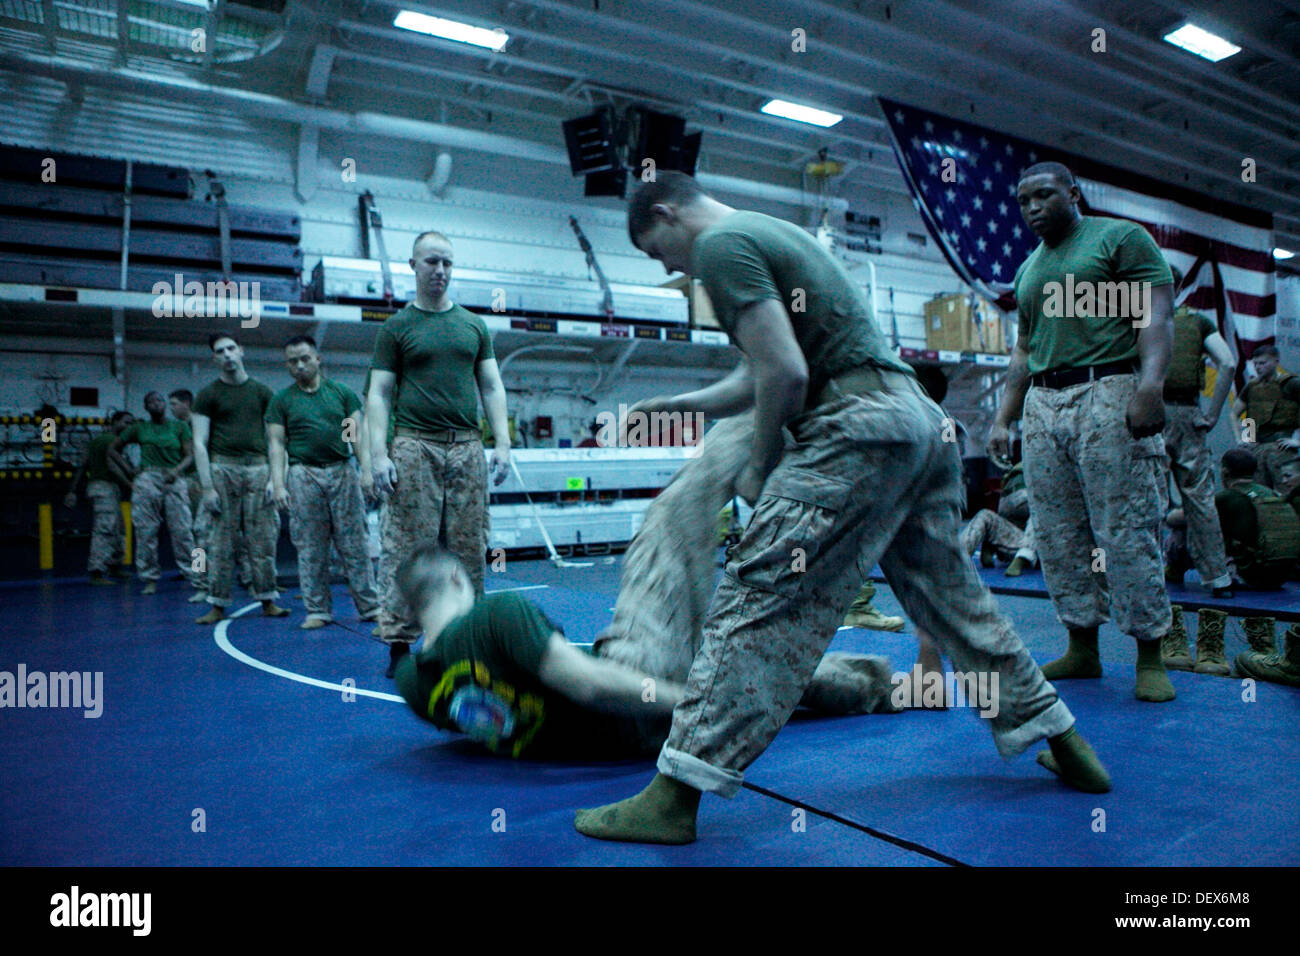 Marines and Sailors with the 31st Marine Expeditionary Unit conduct leg sweeps under the supervision of Sgt. Johnathon R. Robins - Stock Image